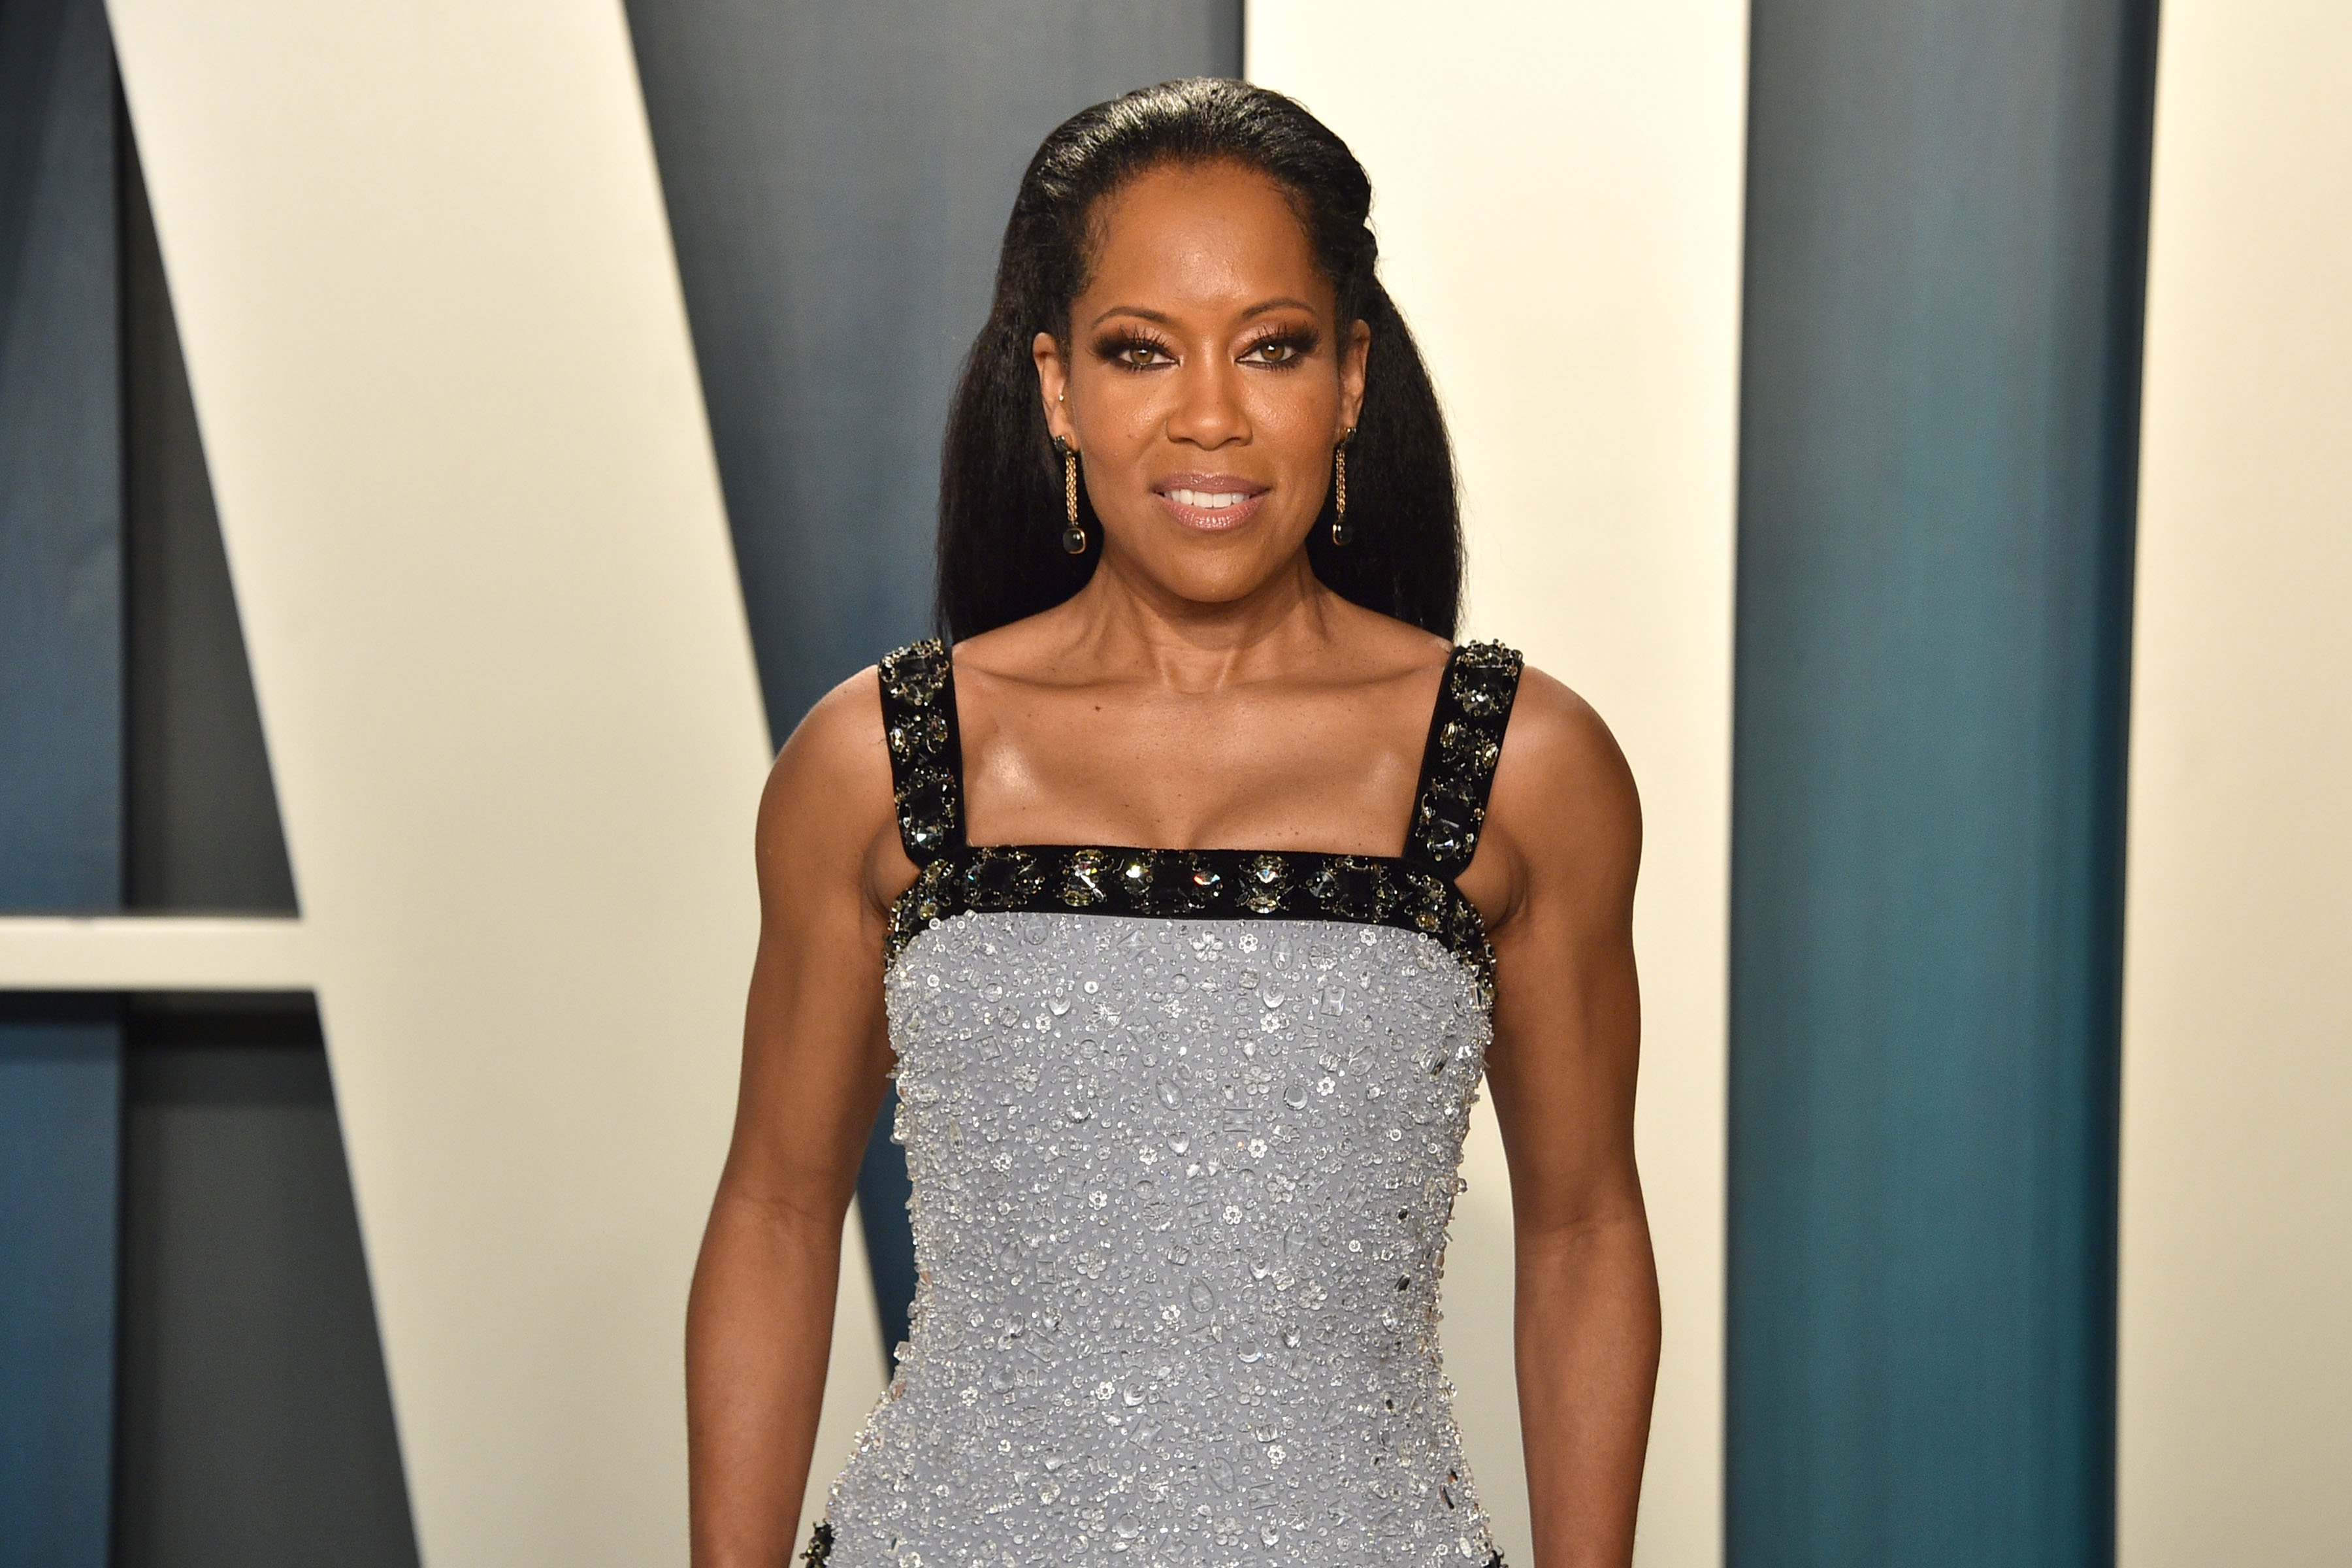 Regina King at Wallis Annenberg Center for the Performing Arts for the 2020 Vanity Fair Oscar Party on February 09, 2020 in Beverly Hills, California.| Source: Getty Images